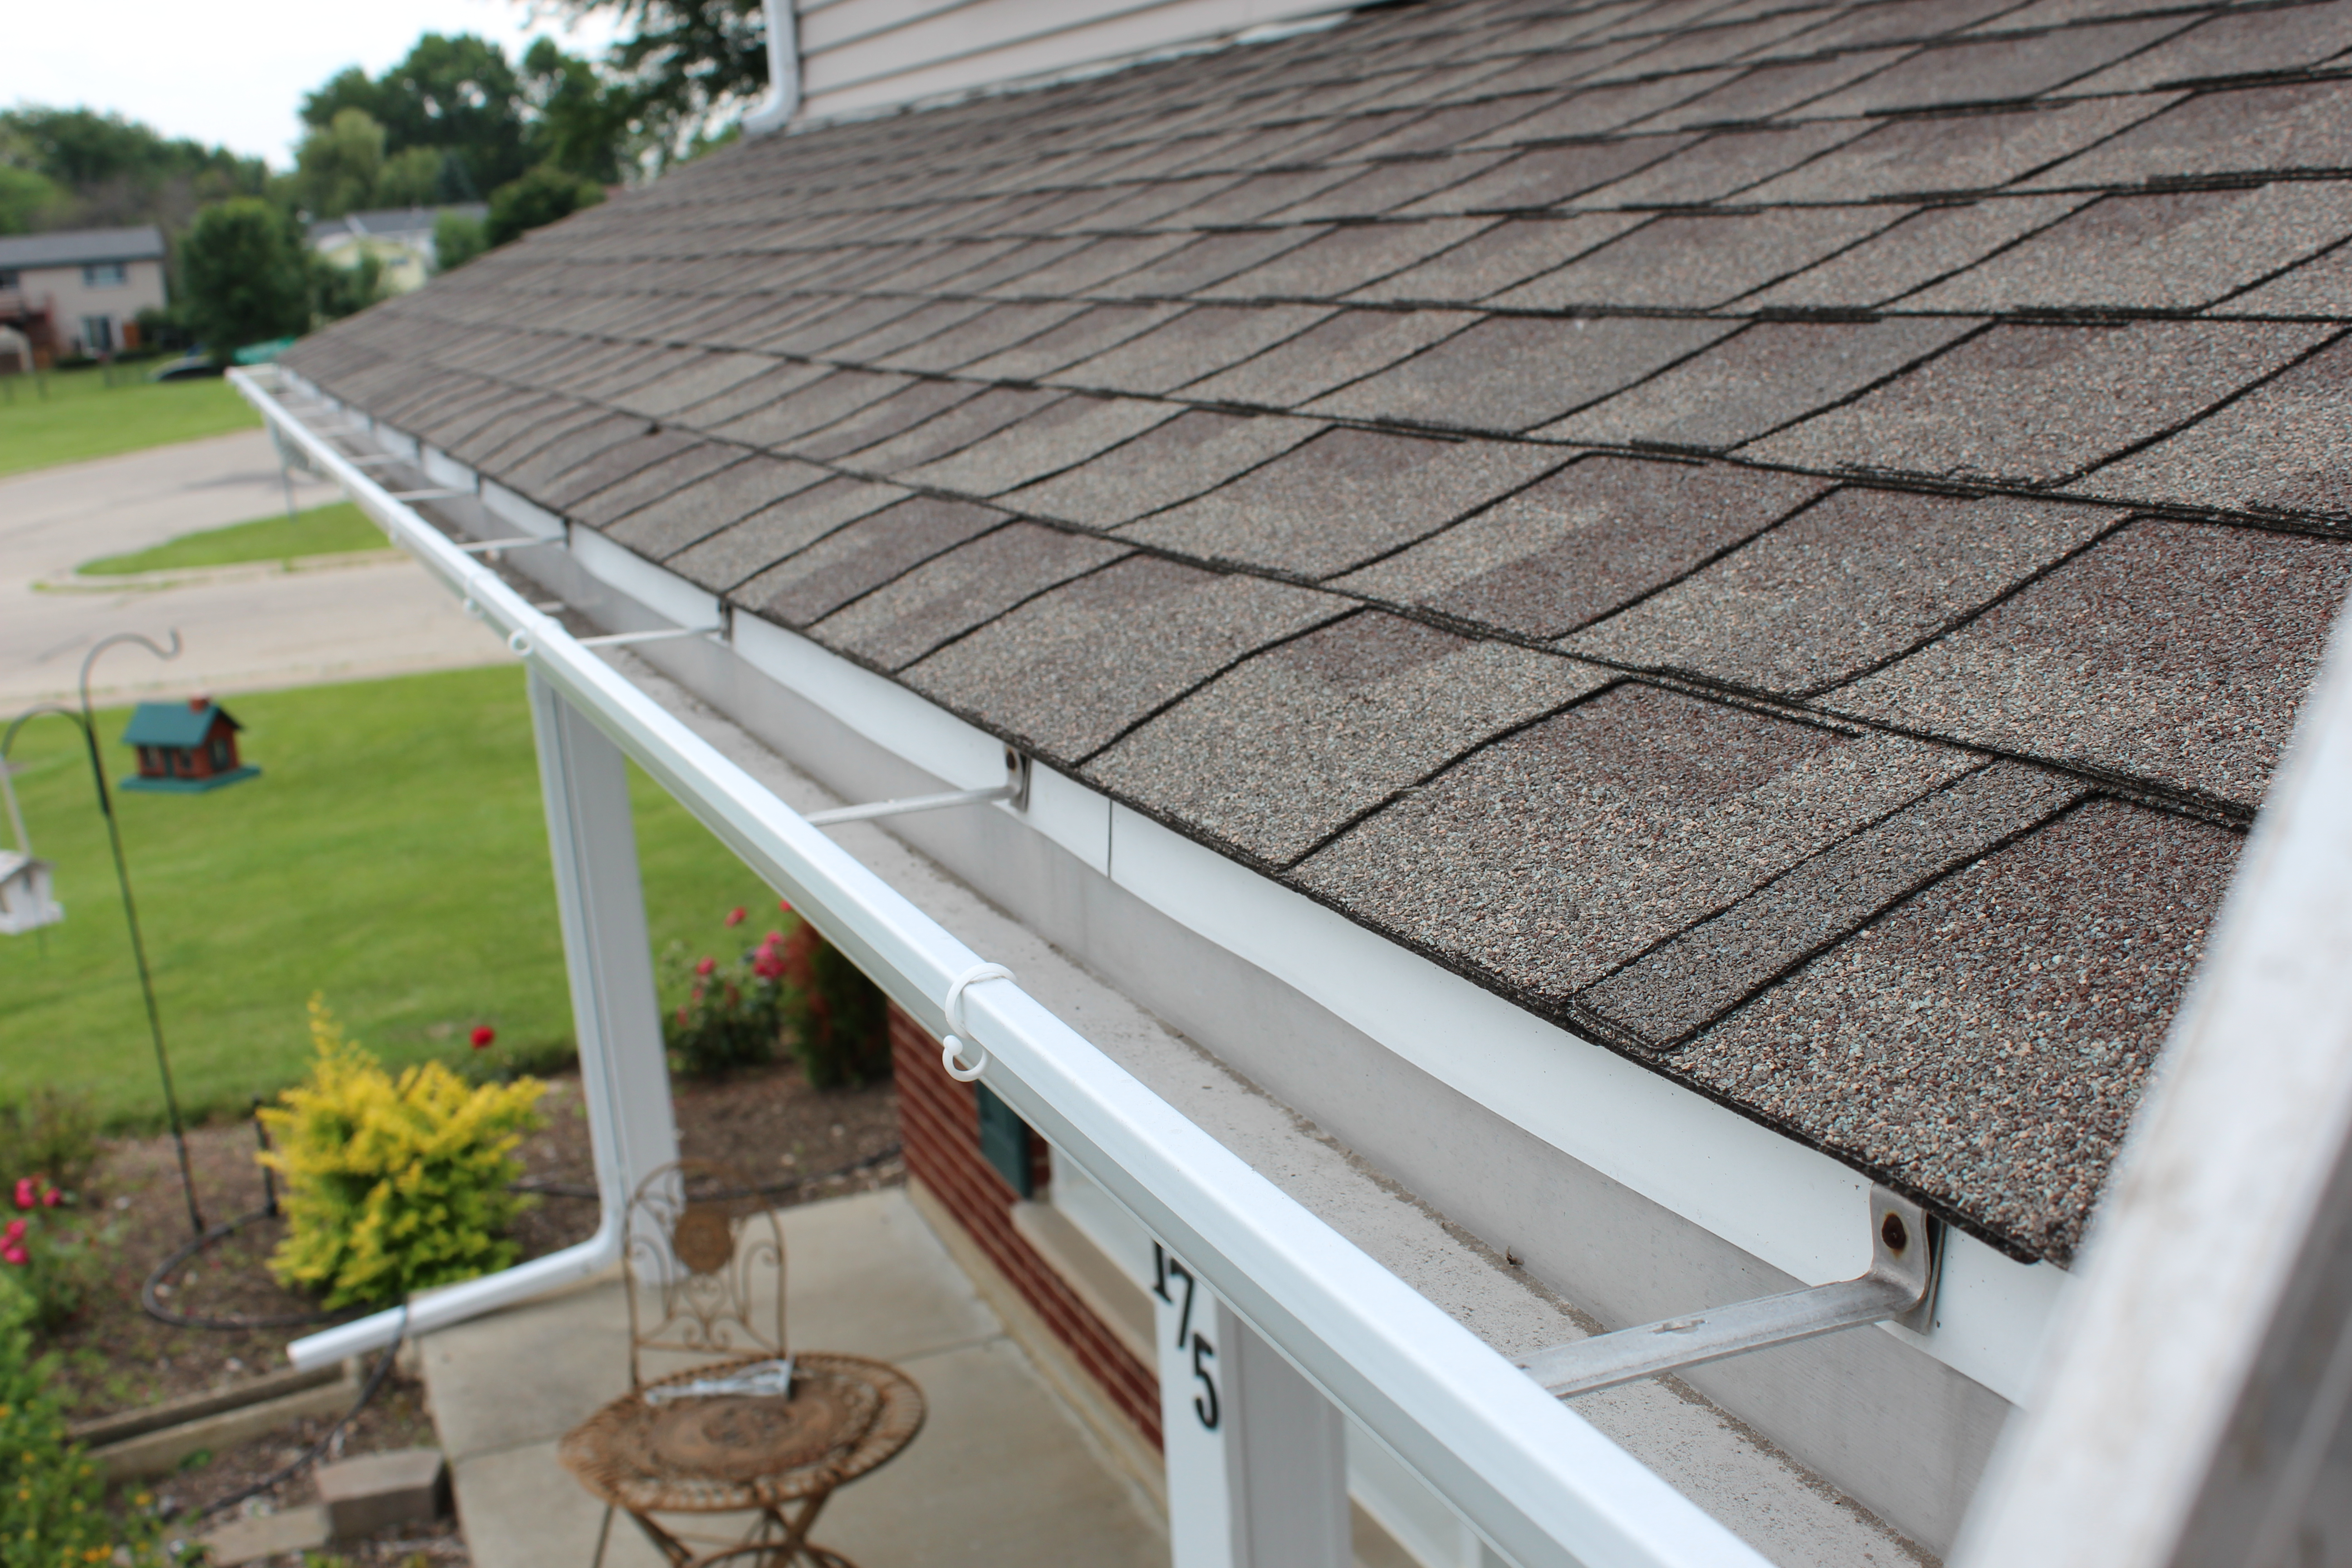 Gutter Cleaning In Appling